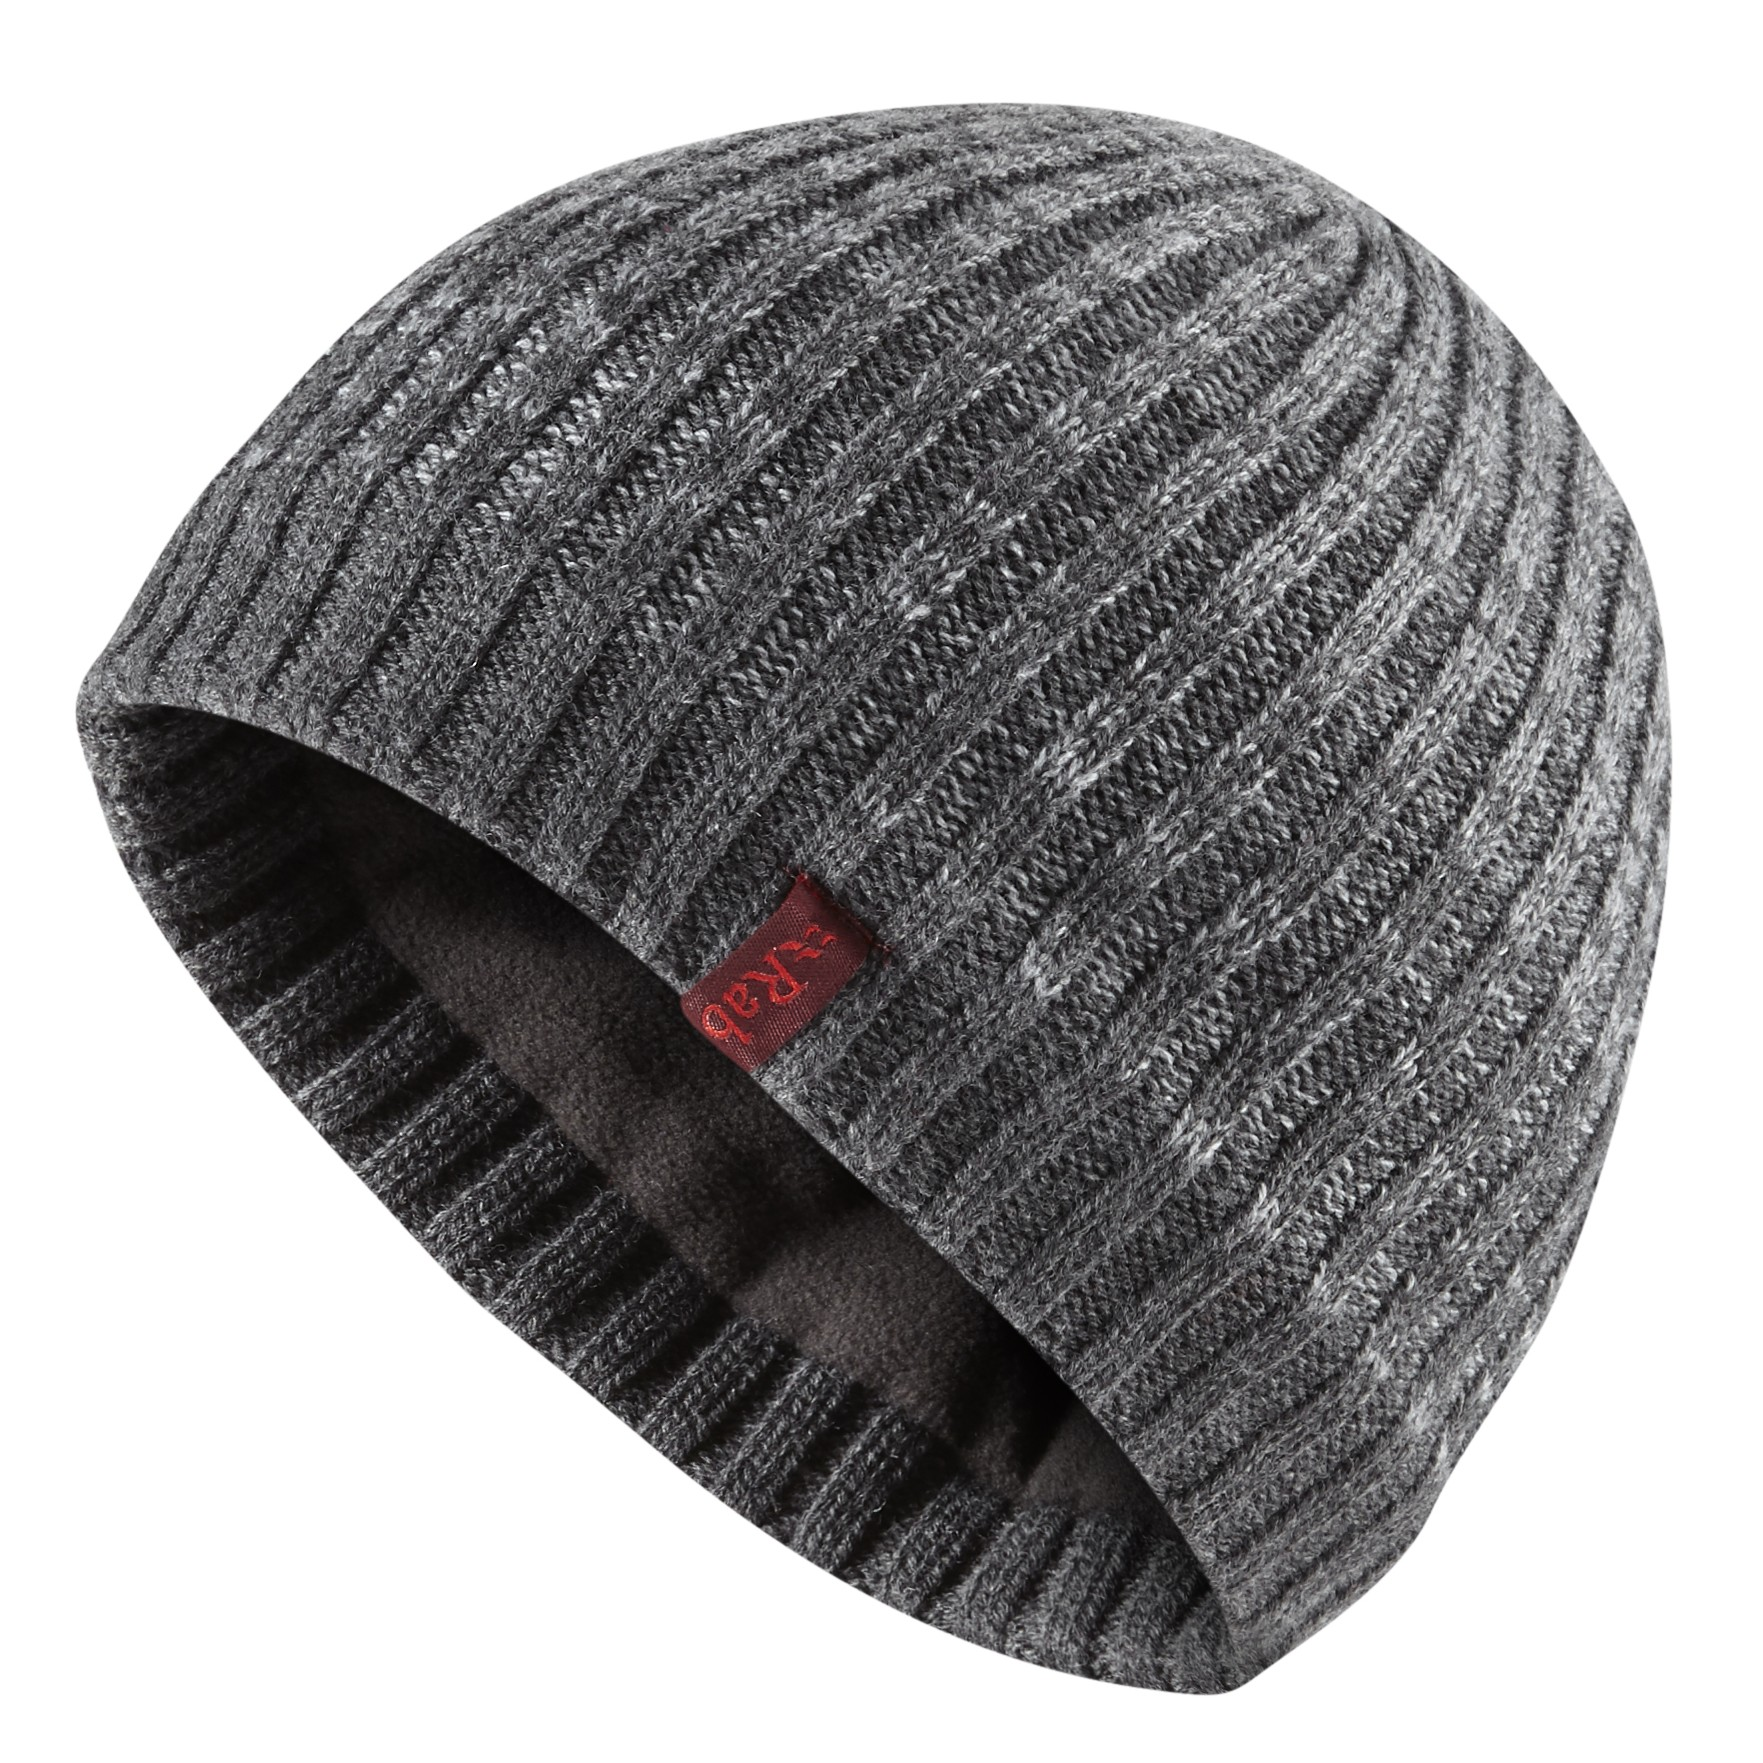 Rab Elevation Beanie - Graphene